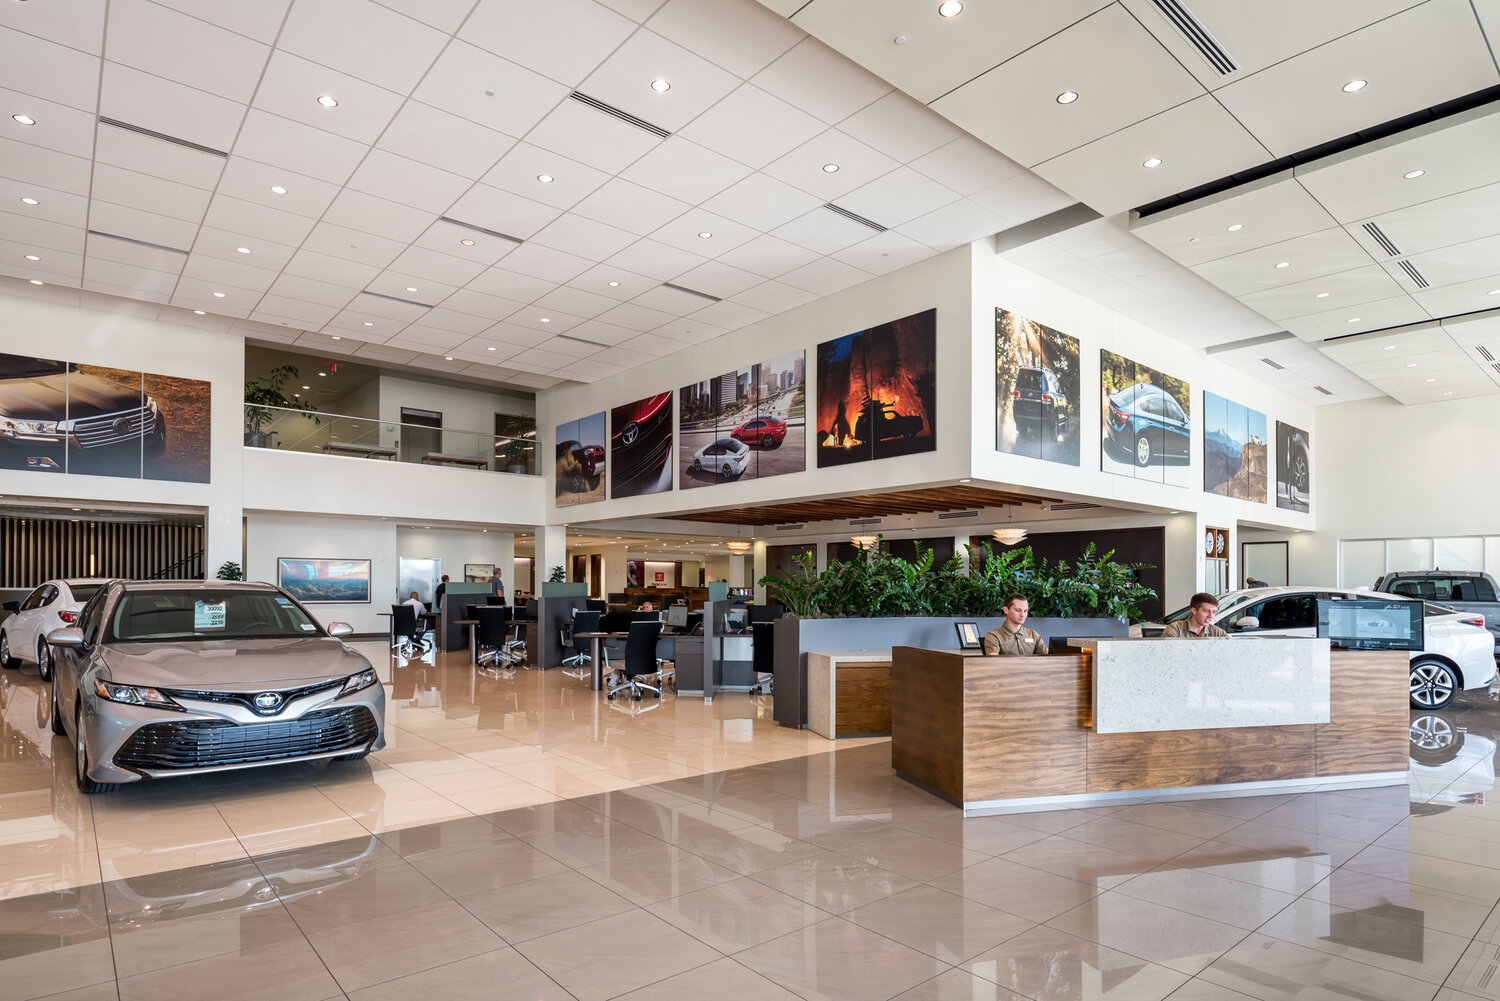 Precision Toyota_Architecture Photography_An Pham Photography_AN7_4852.jpg